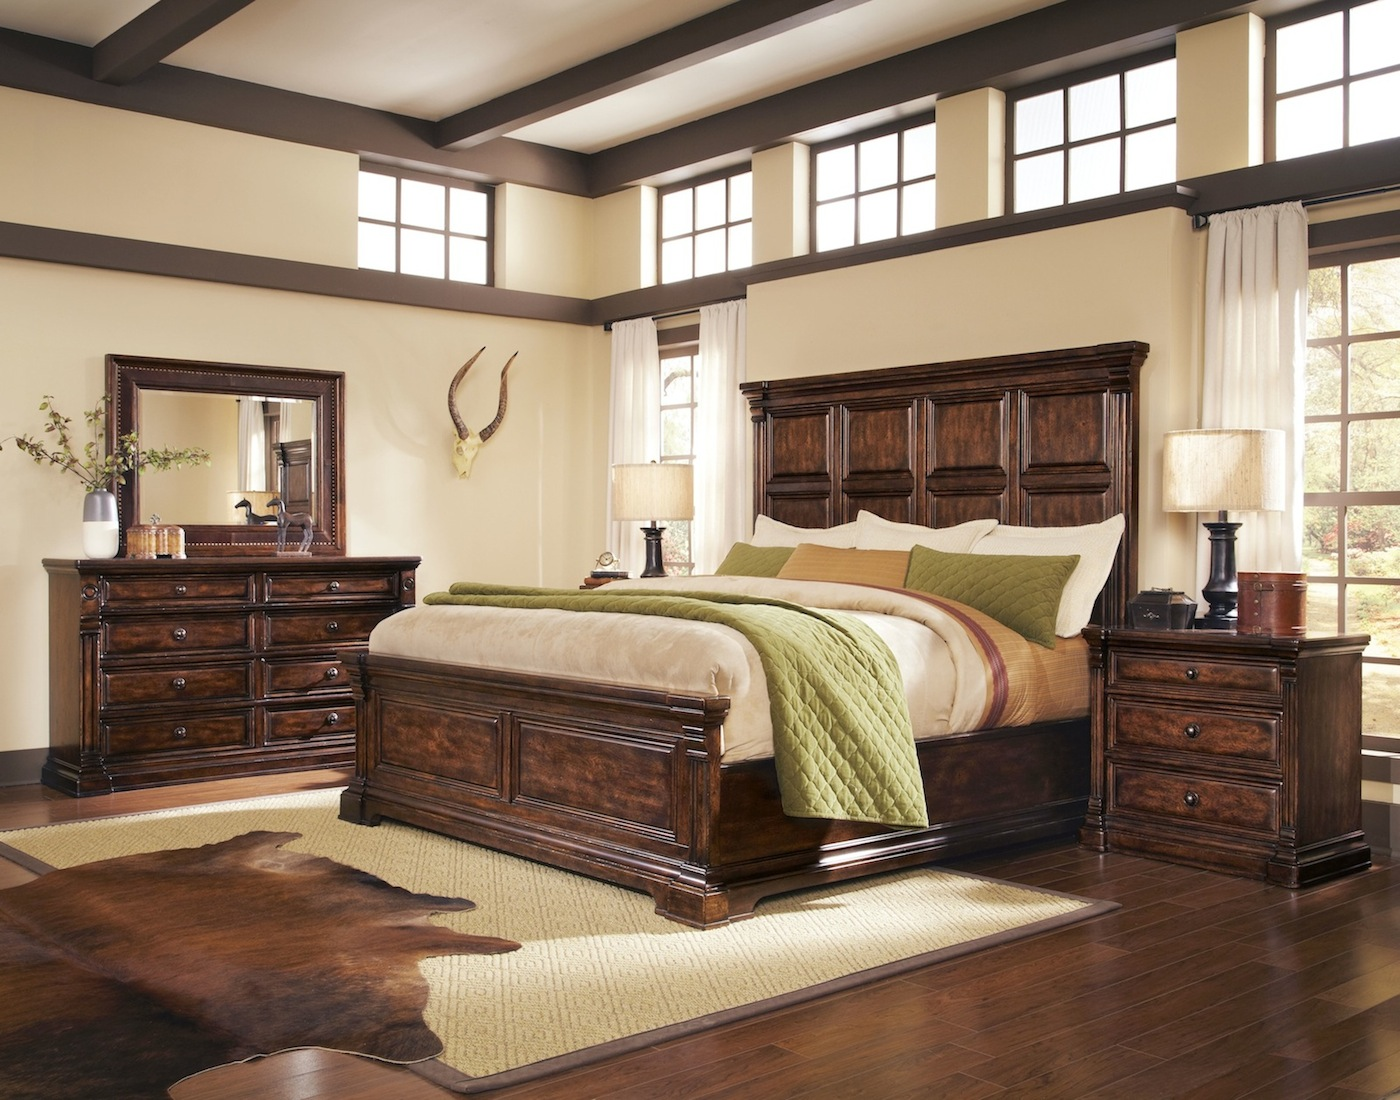 whiskey oak rustic inspired wooden panel bedroom set 205000. Black Bedroom Furniture Sets. Home Design Ideas